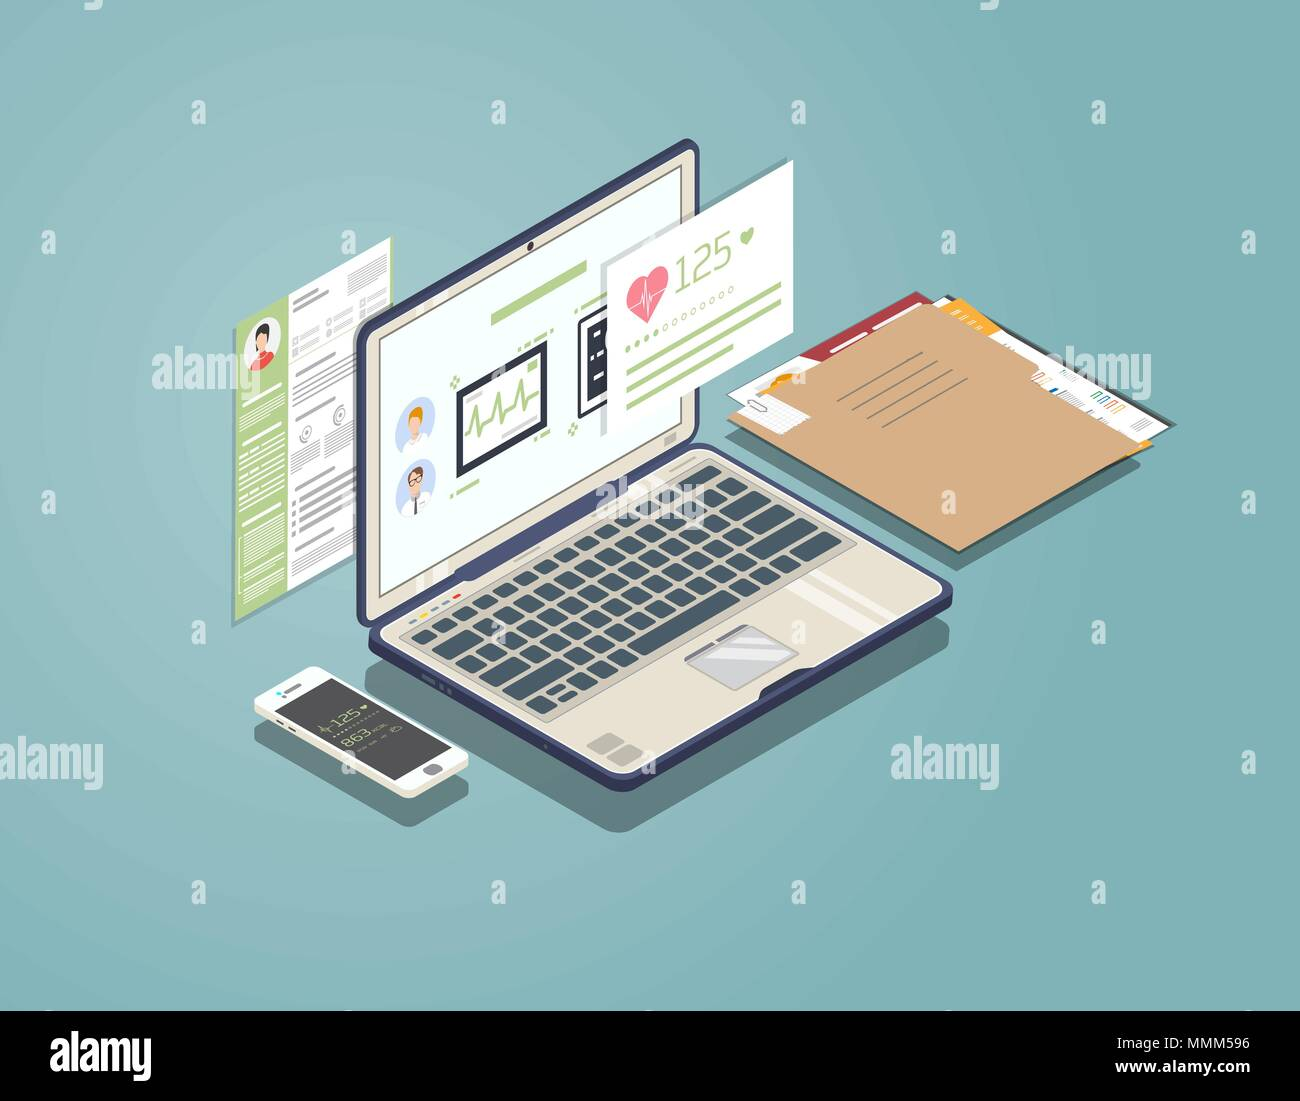 Medical laptop concept - Stock Image